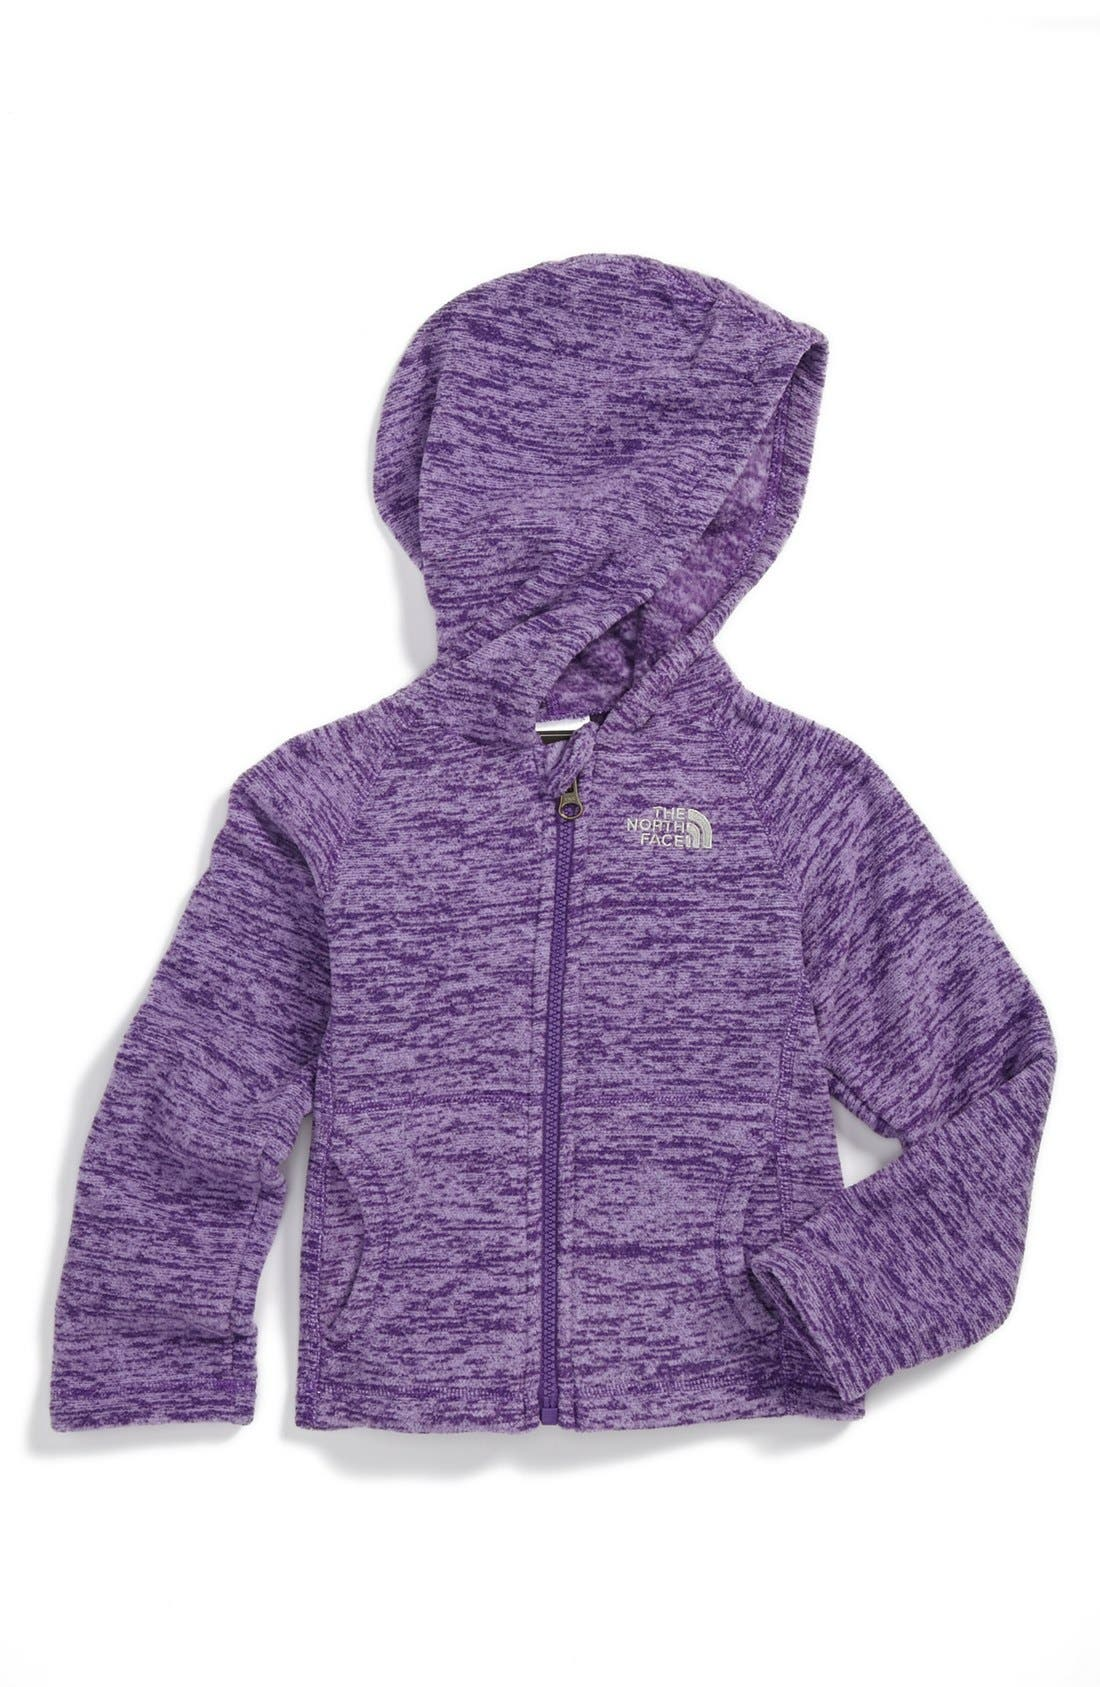 Main Image - The North Face 'Glacier' Fleece Hoodie (Toddler Girls)